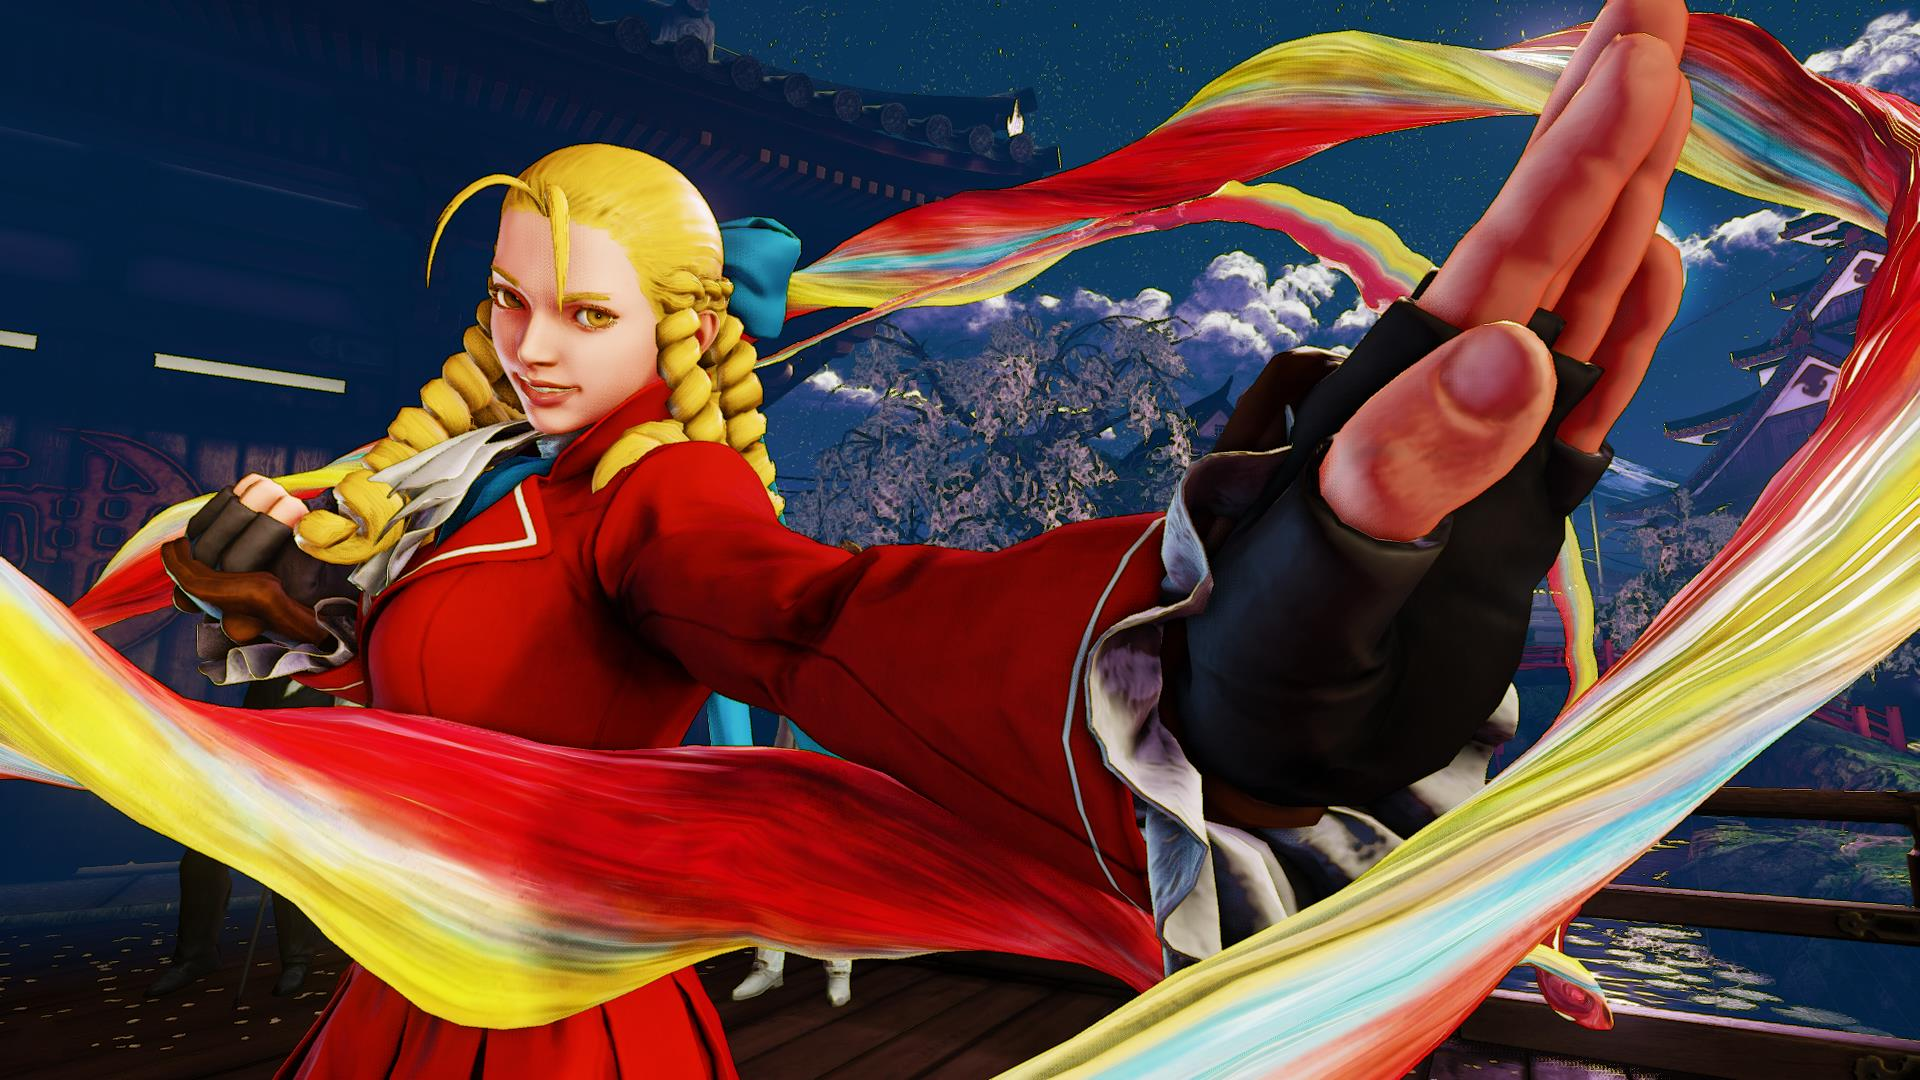 Karin confirmed for Street Fighter 5, watch her in action ...